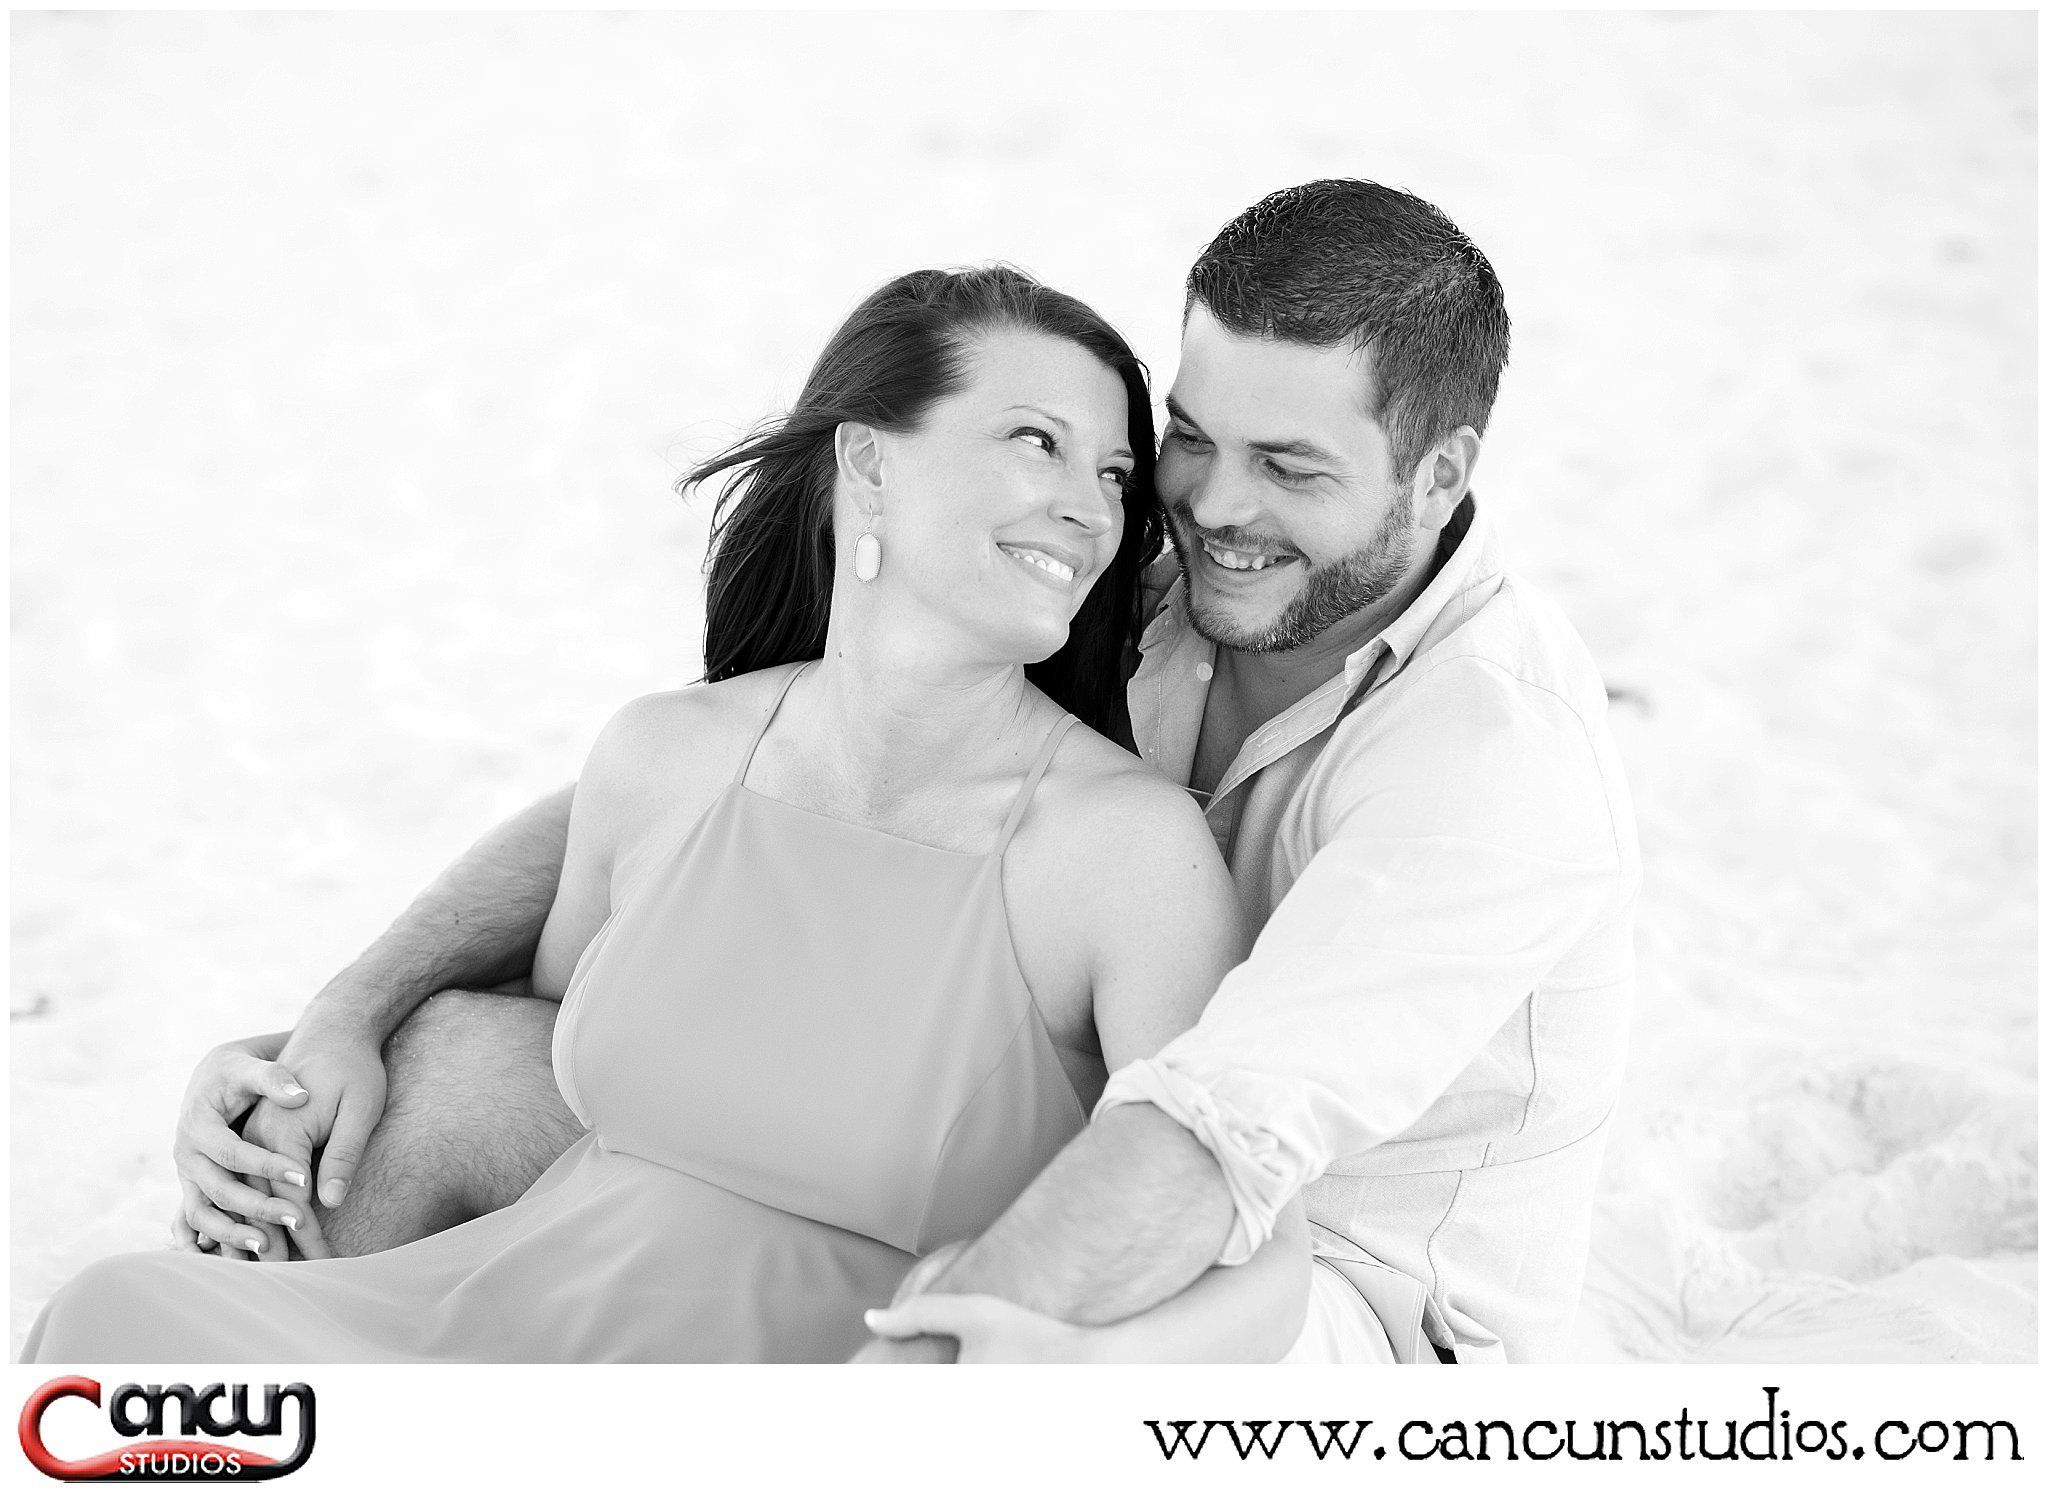 Show off your #engagementring with a #photosession during your #CancunVacation #Cancunphotographer #Esession #EngagementPhotos #BeachPhotos